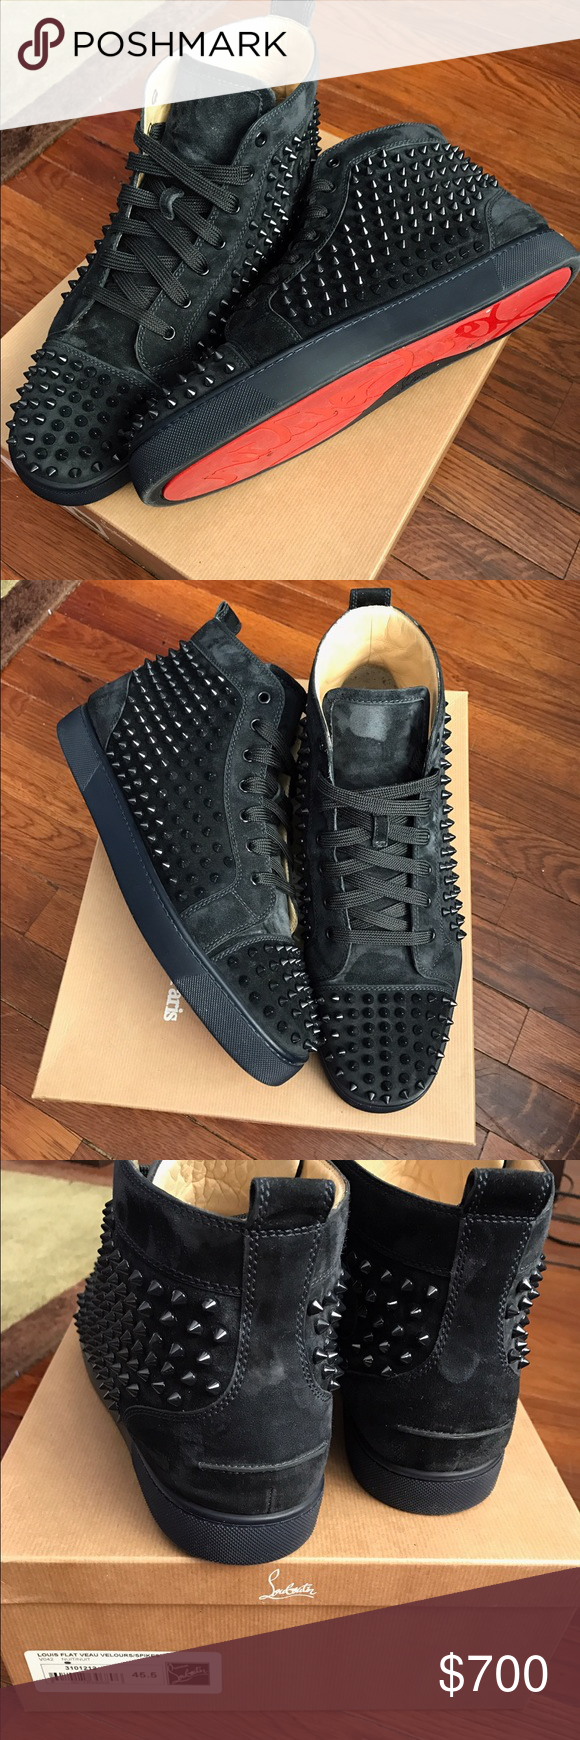 best service dca3d 8c939 Men's authentic Christian louboutin sneakers Used but ...